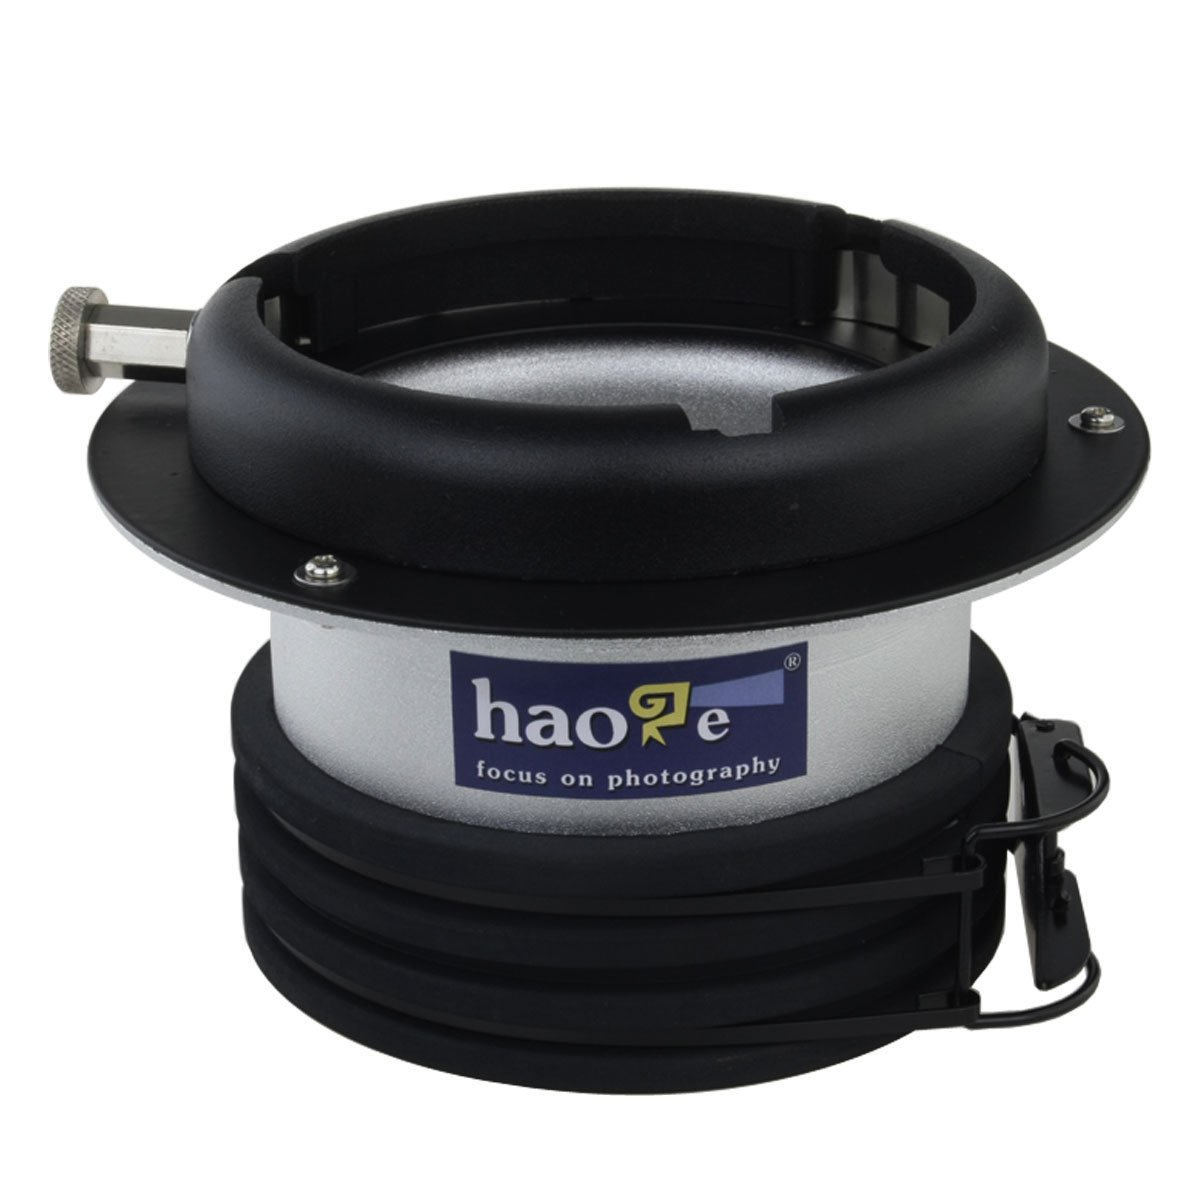 Haoge Profoto to Bowens Mount Speedring Ring Adapter Converter for Studio Light Strobe Flash by Haoge